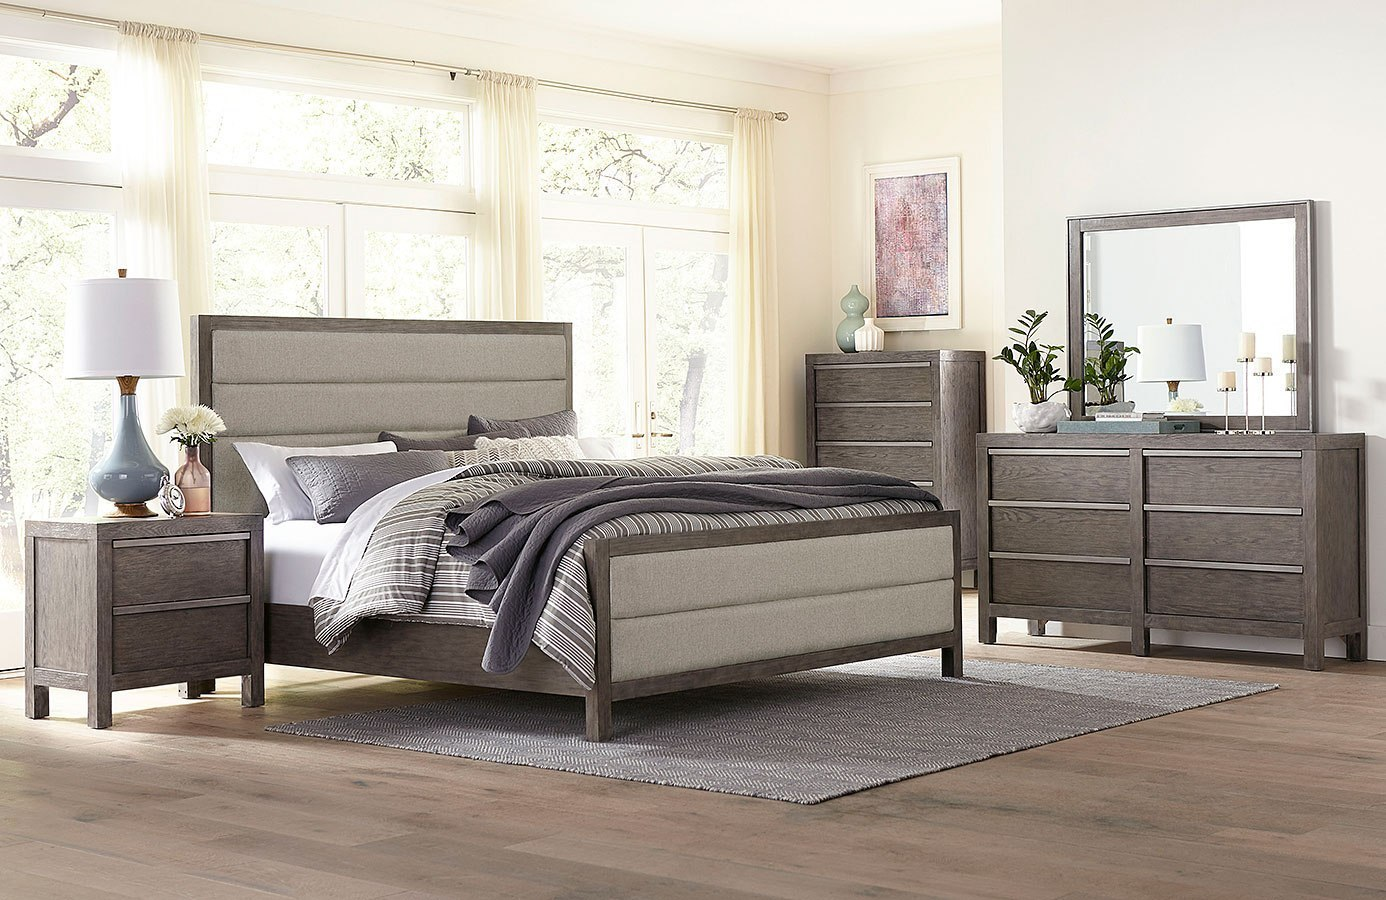 Dresser Melbourne Melbourne Heights Panel Bedroom Set Standard Furniture